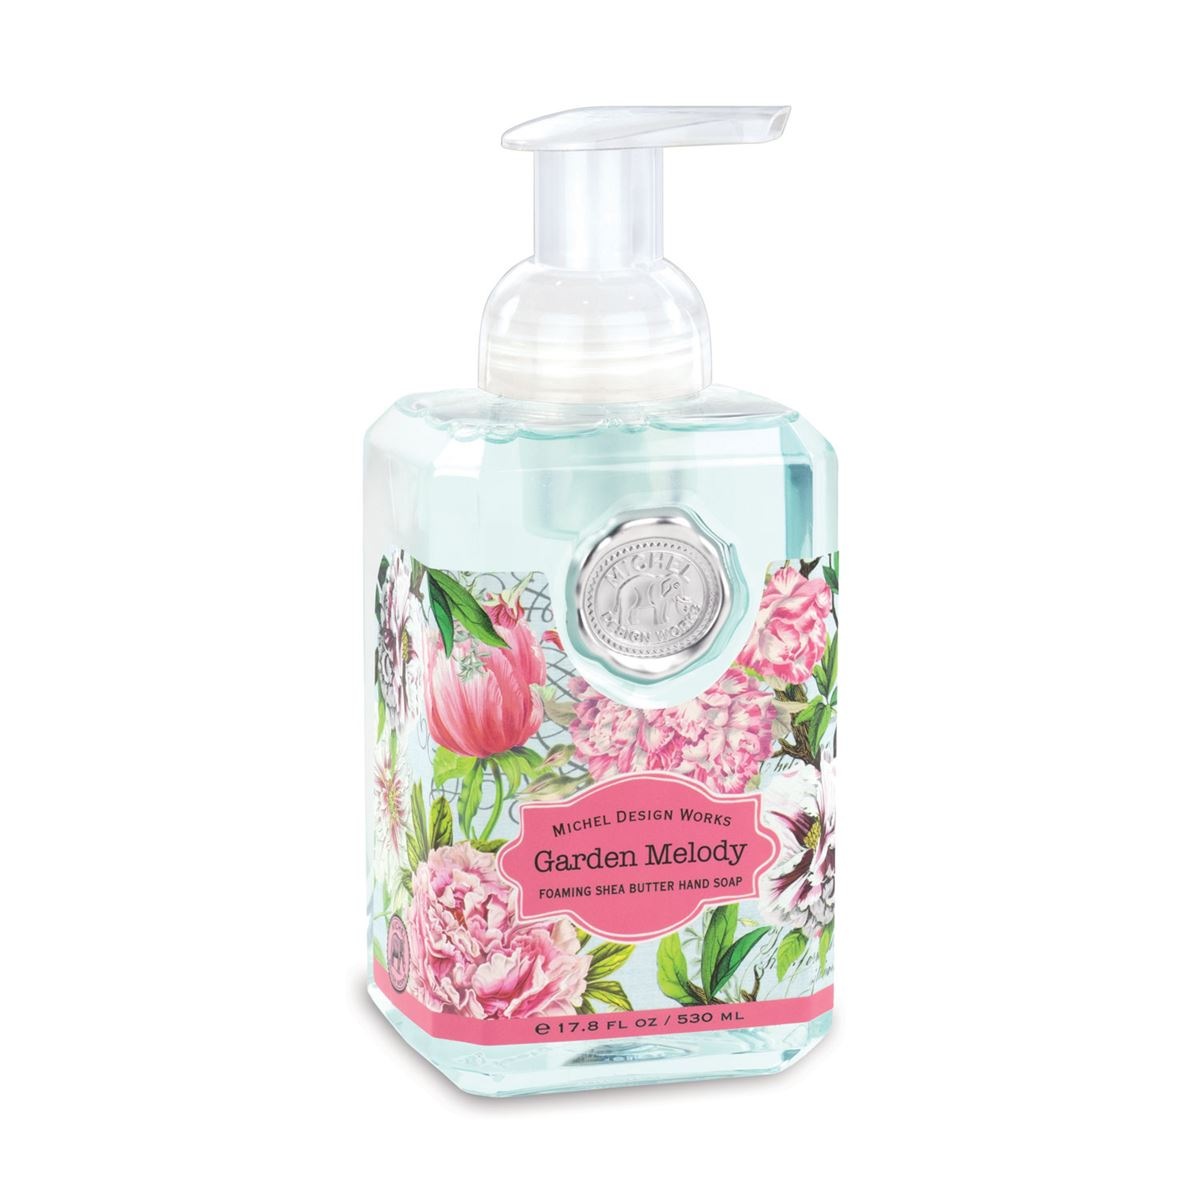 Foaming Hand Soap By Michel Design Works Garden Melody